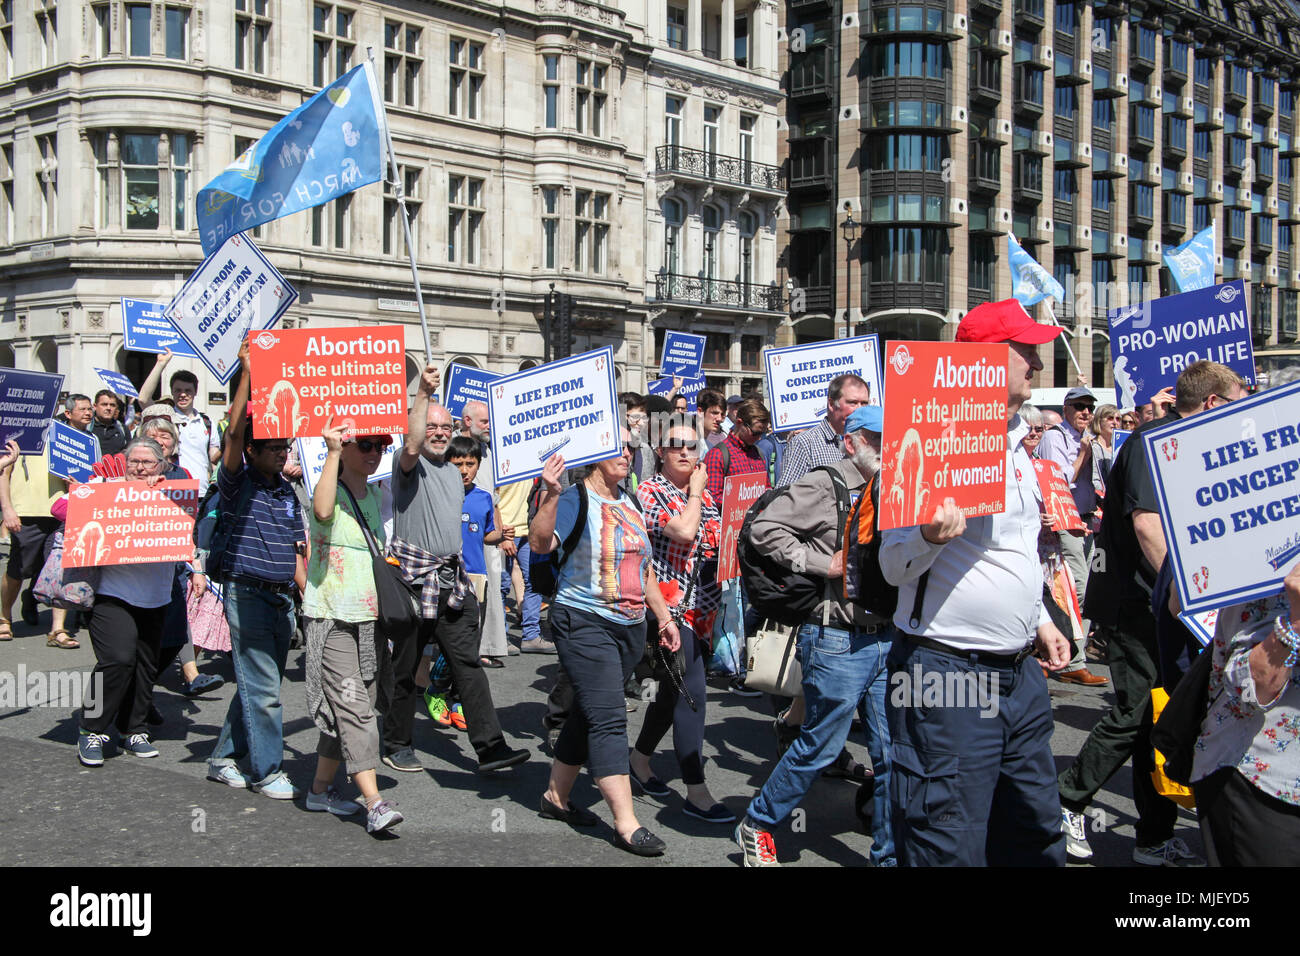 London, UK. 5th May, 2018. Pro-life demonstrators march through London Credit: Alex Cavendish/Alamy Live News - Stock Image